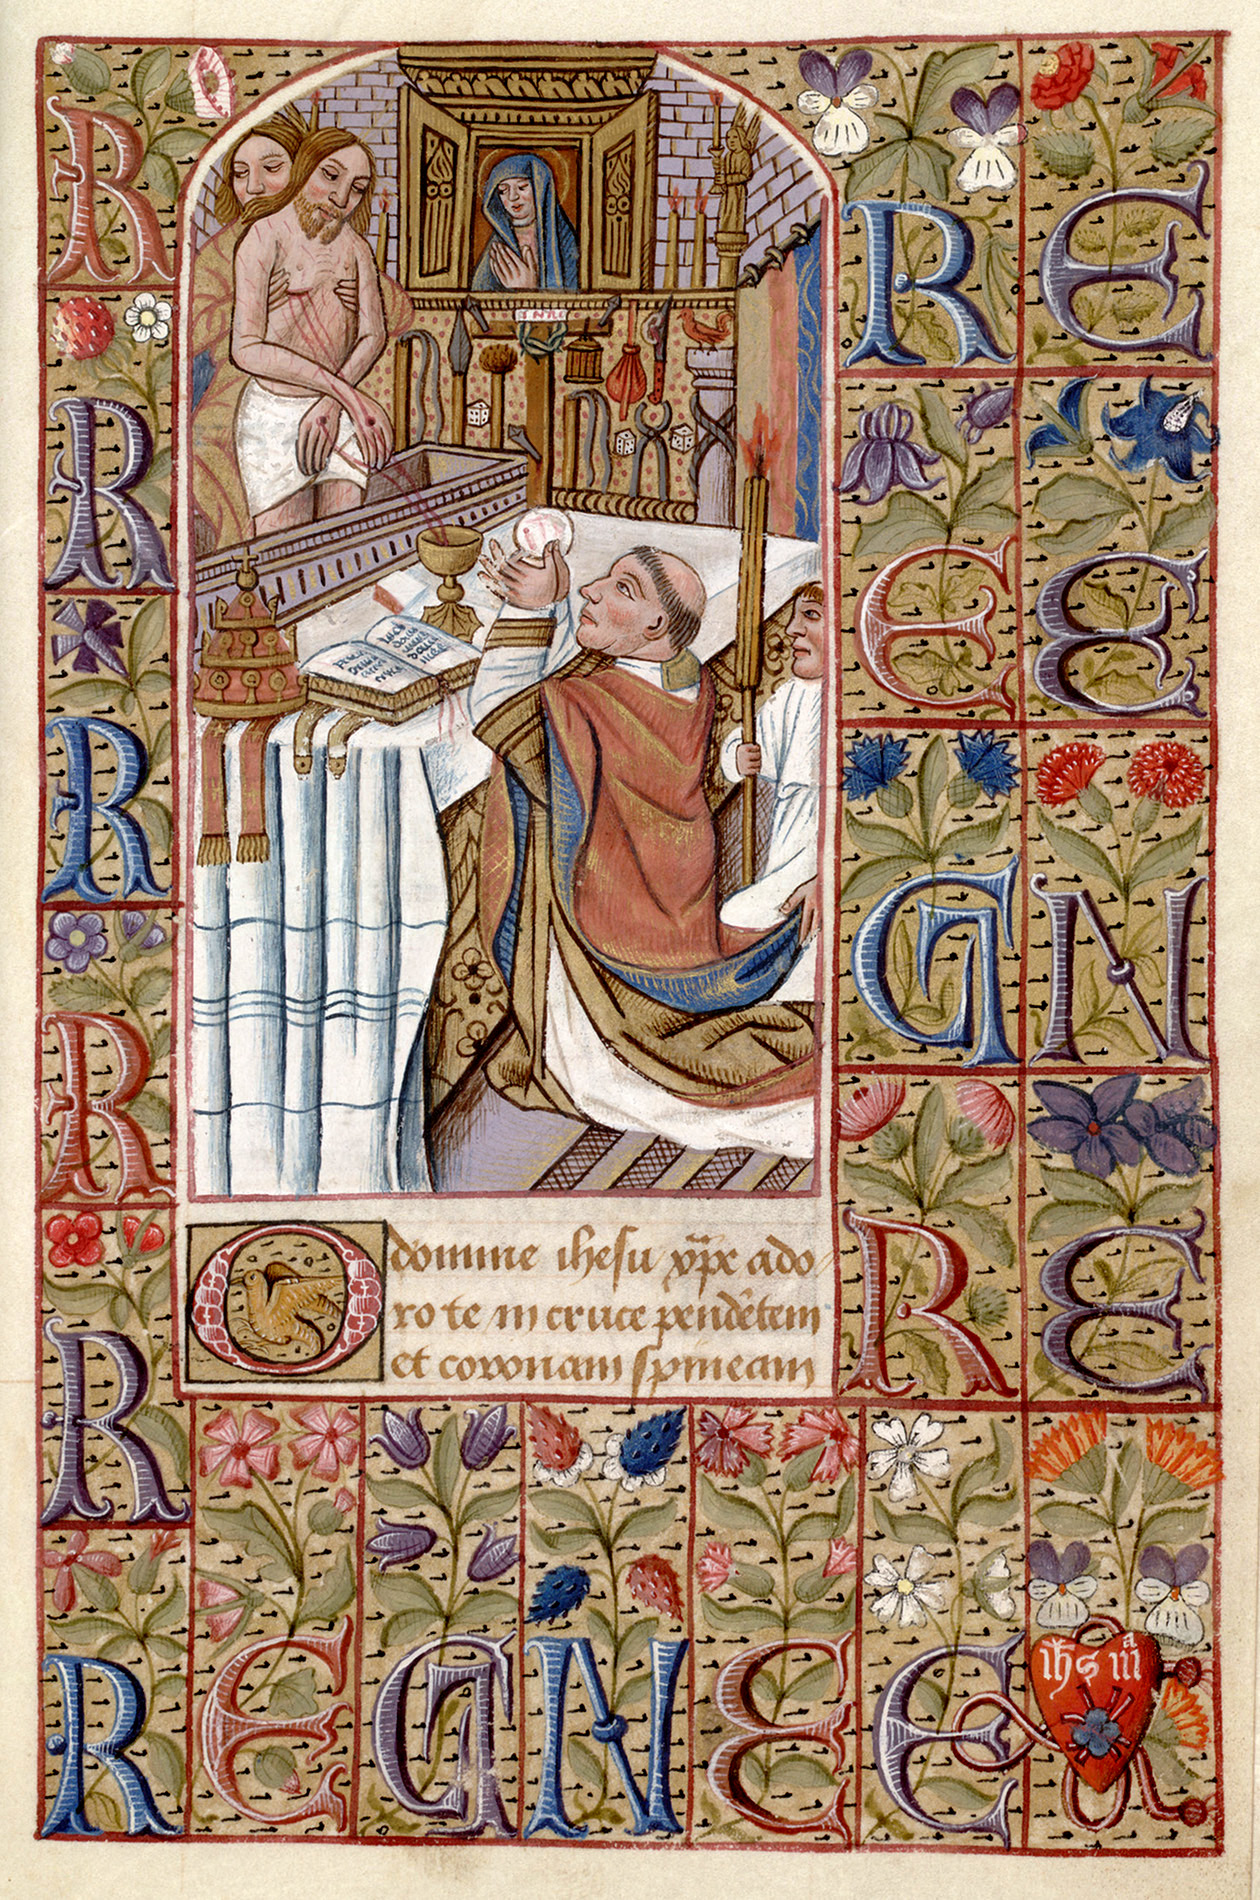 1485-1500 Vision of St. Gregory, Heures a L'usage de Chartres Huntington Library HM 01150 ,f. 161, San Marino, California